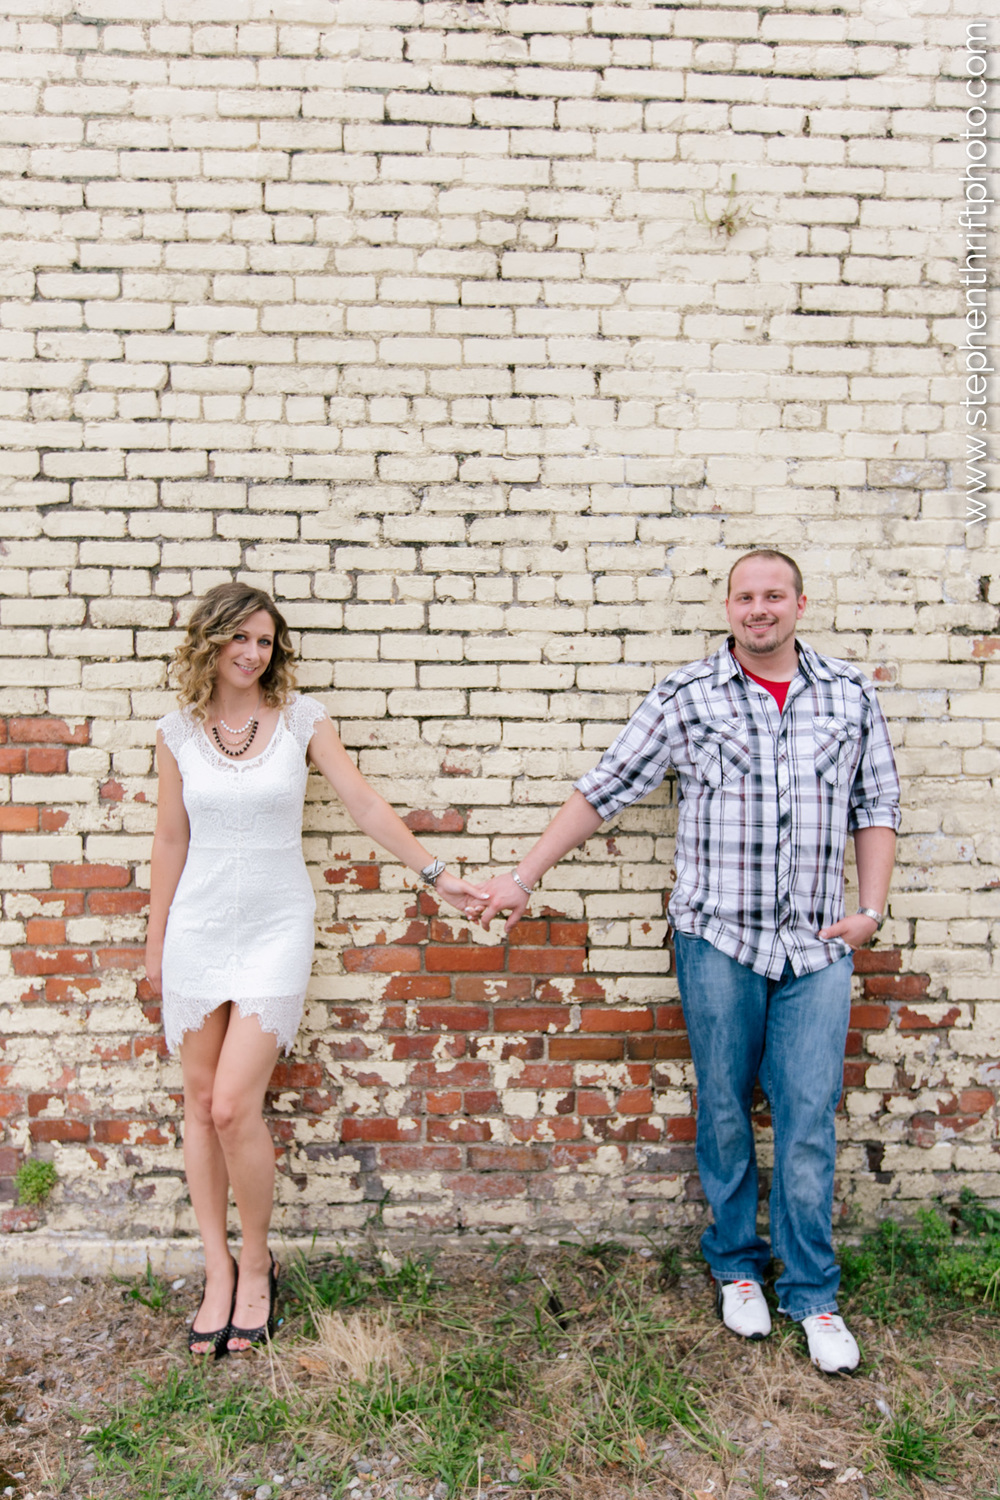 Whitney and Jason's urban engagement session photographed by Stephen Thrift in the Triad.